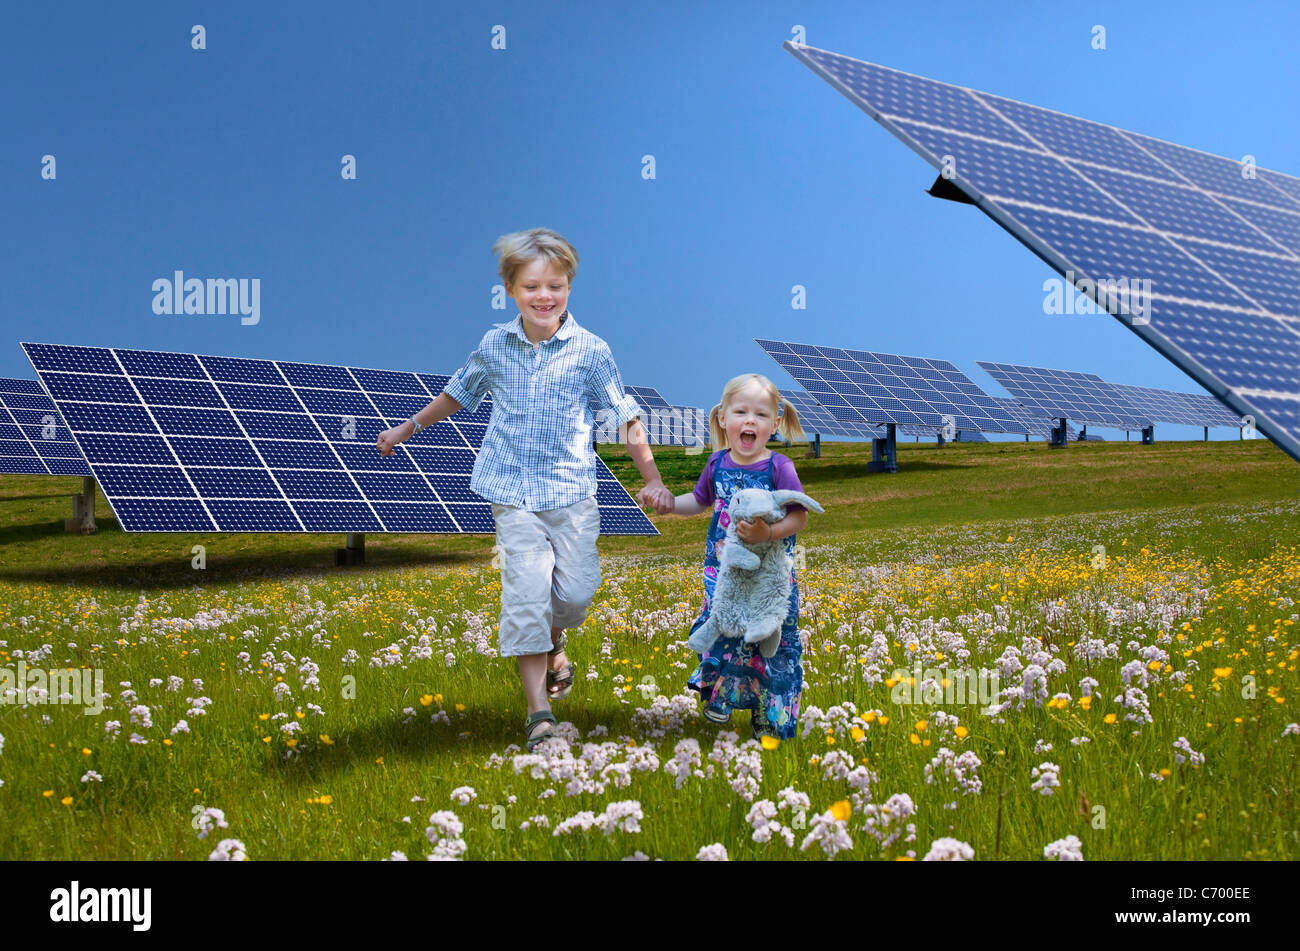 Children playing near solar panels stock photo 38723734 for How to make a solar panel for kids